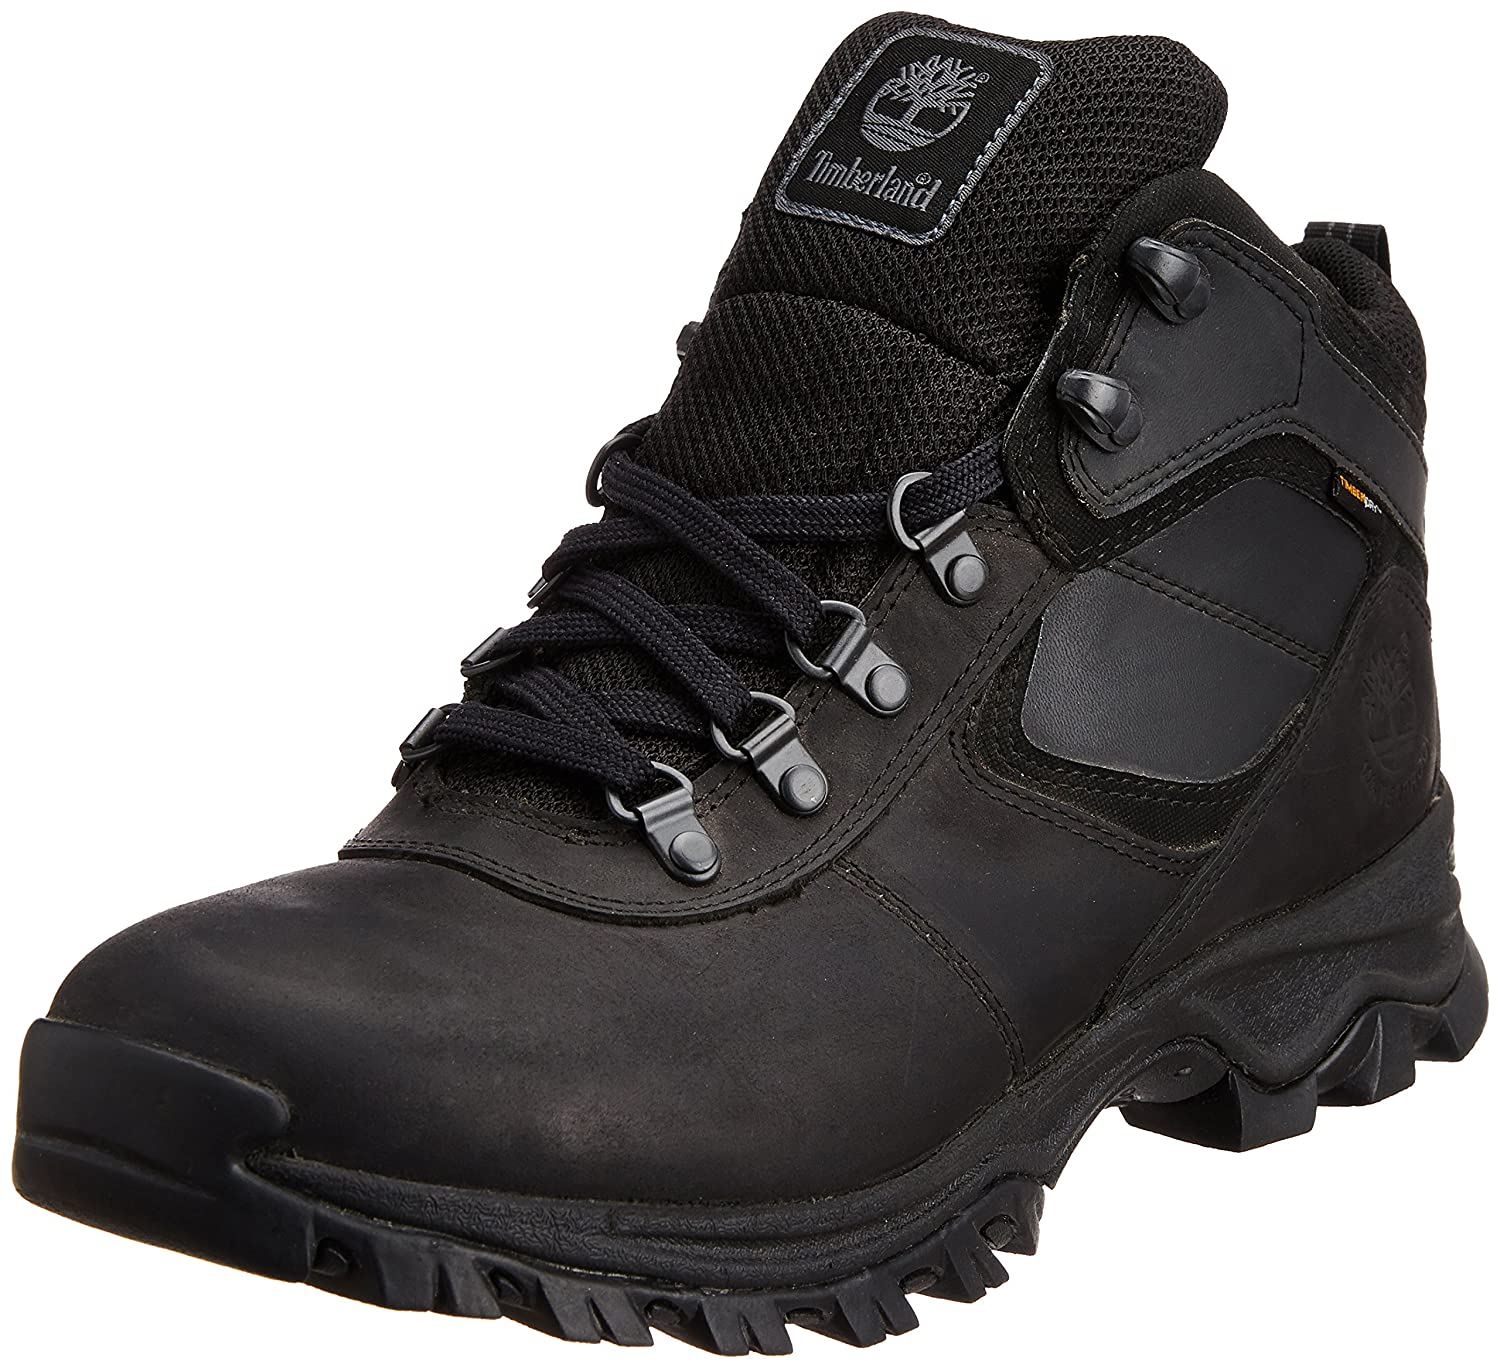 all black classic timberland boots